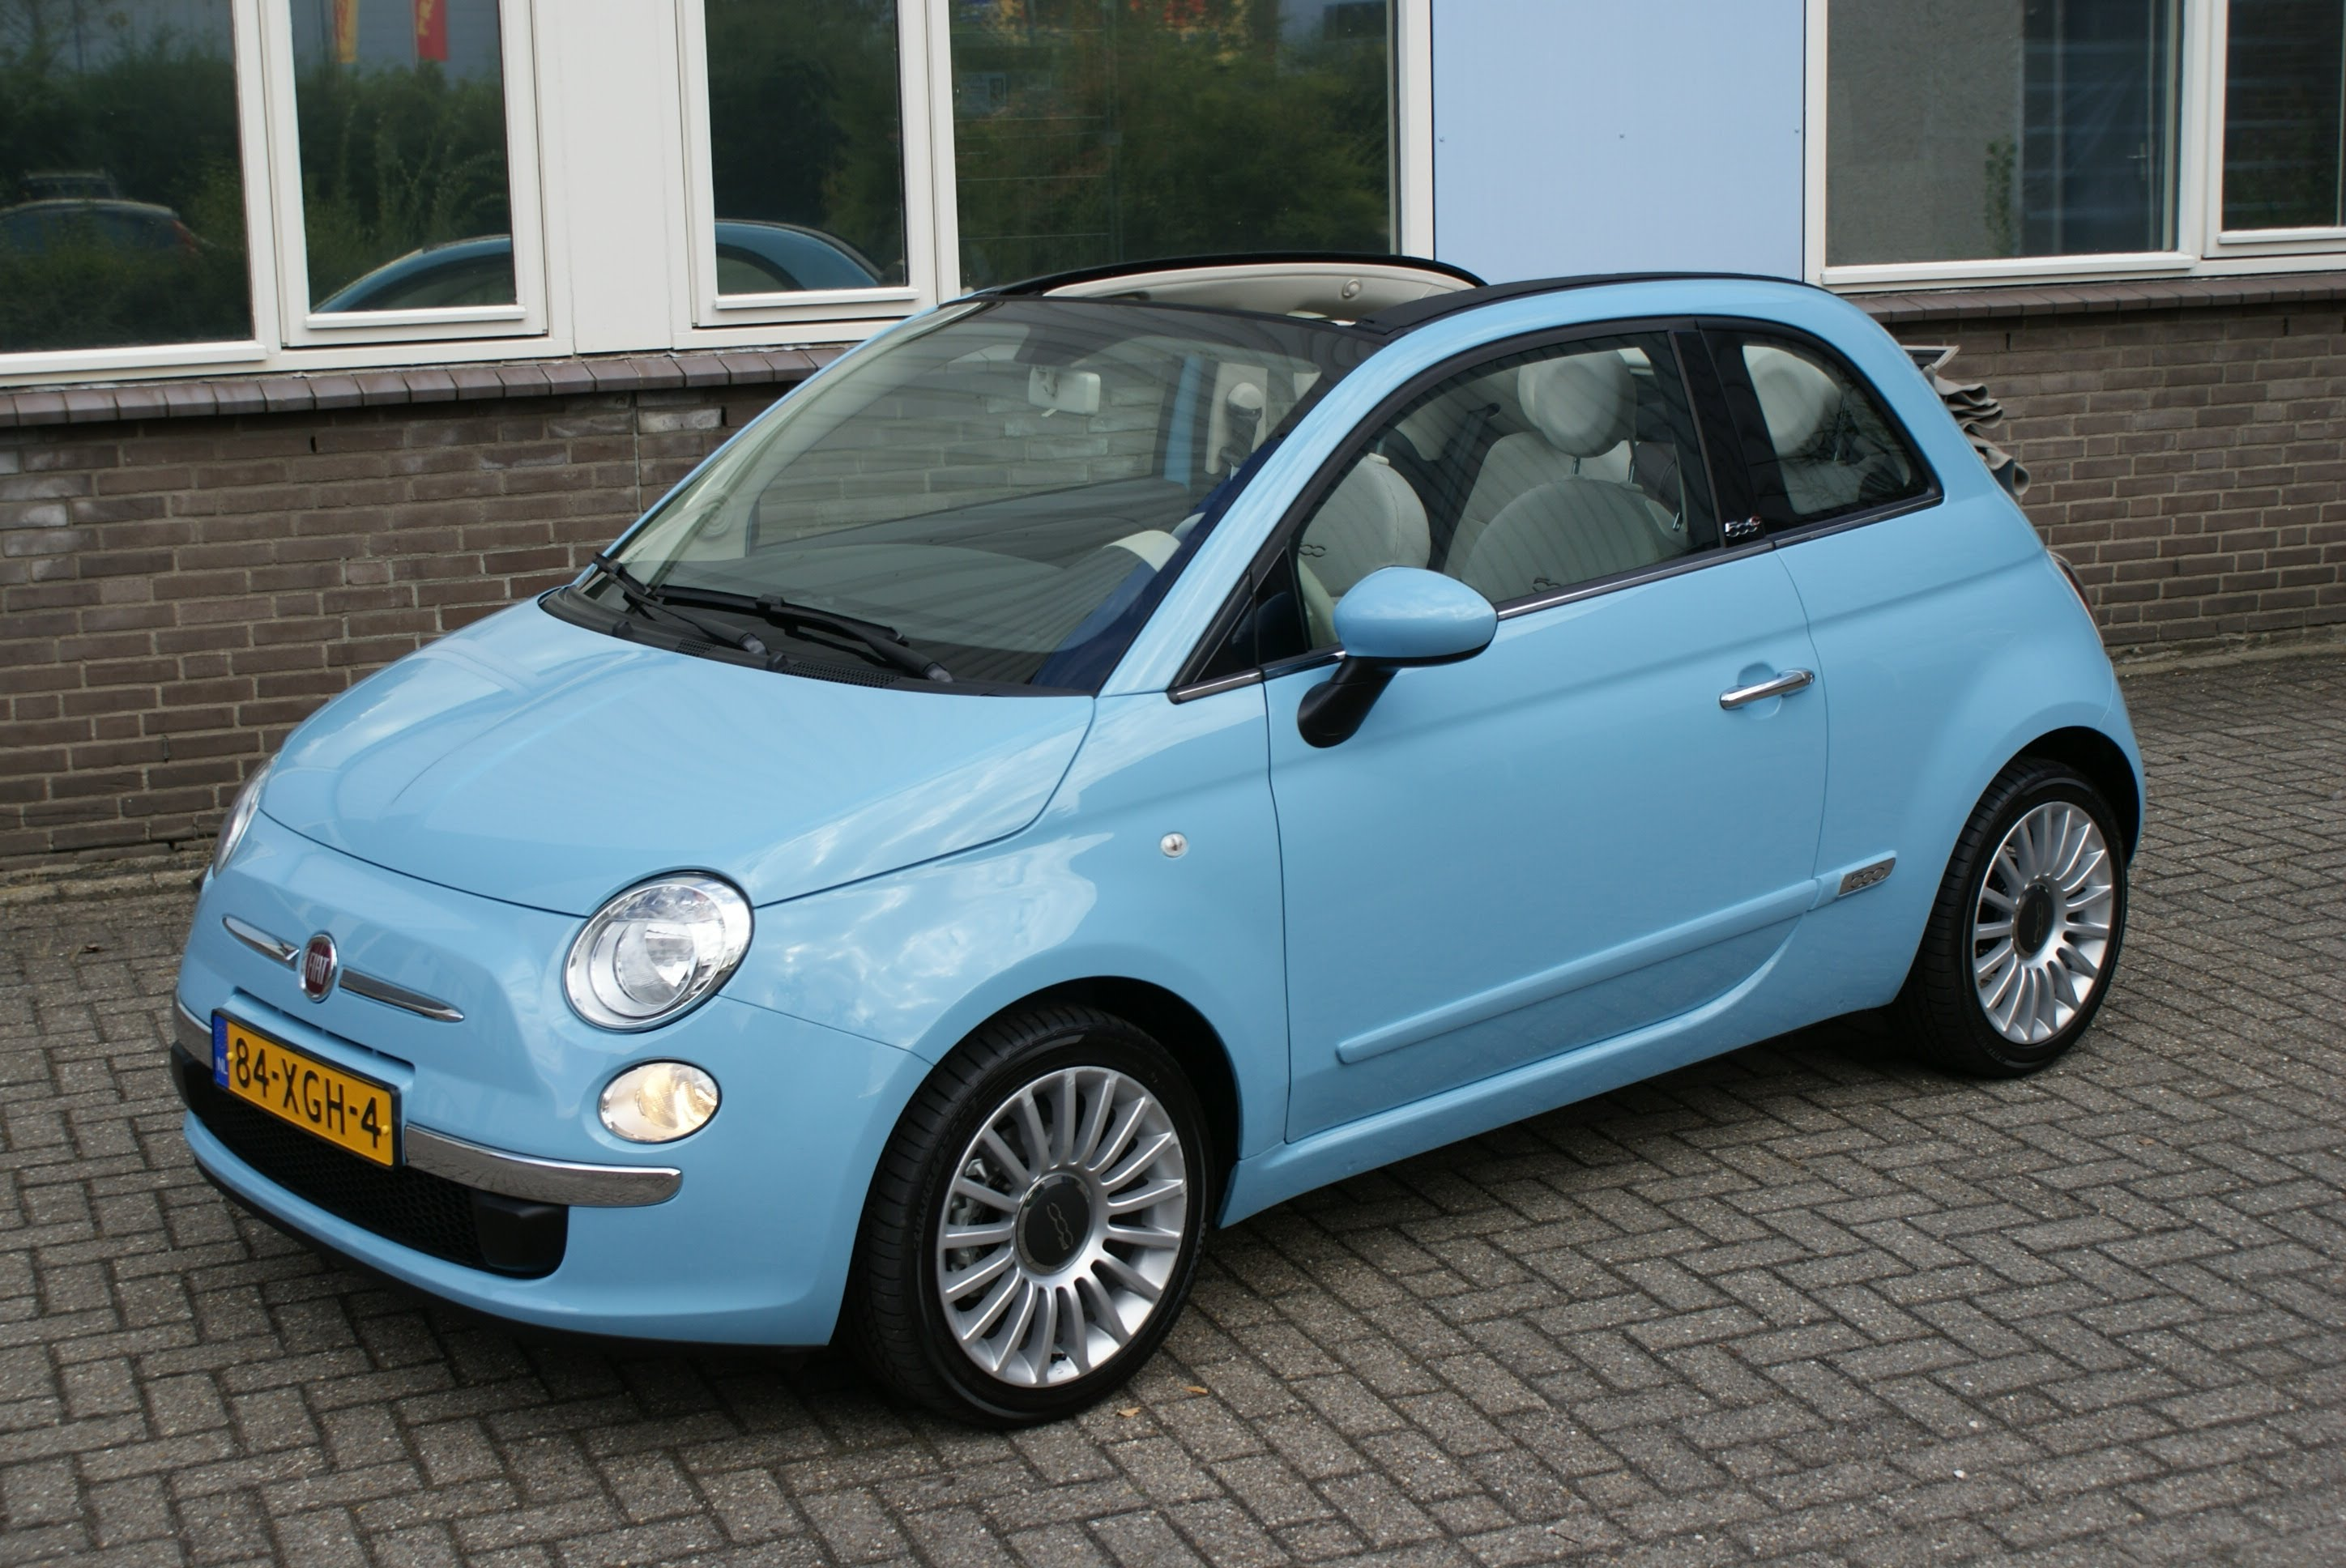 fiat 500 blue convertible for sale Picture free download image